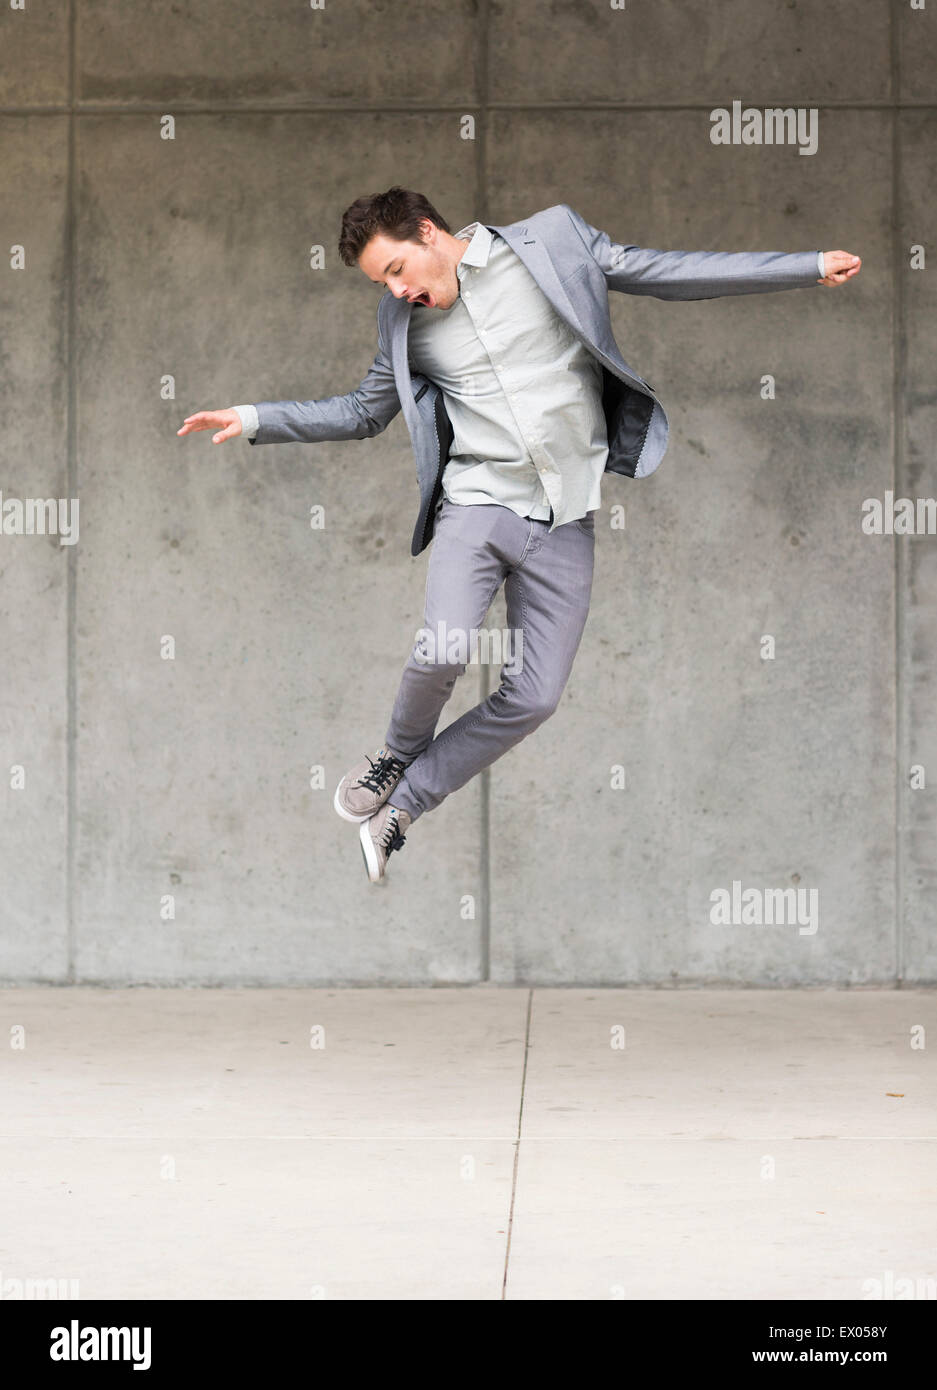 Businessman jumping mid air - Stock Image